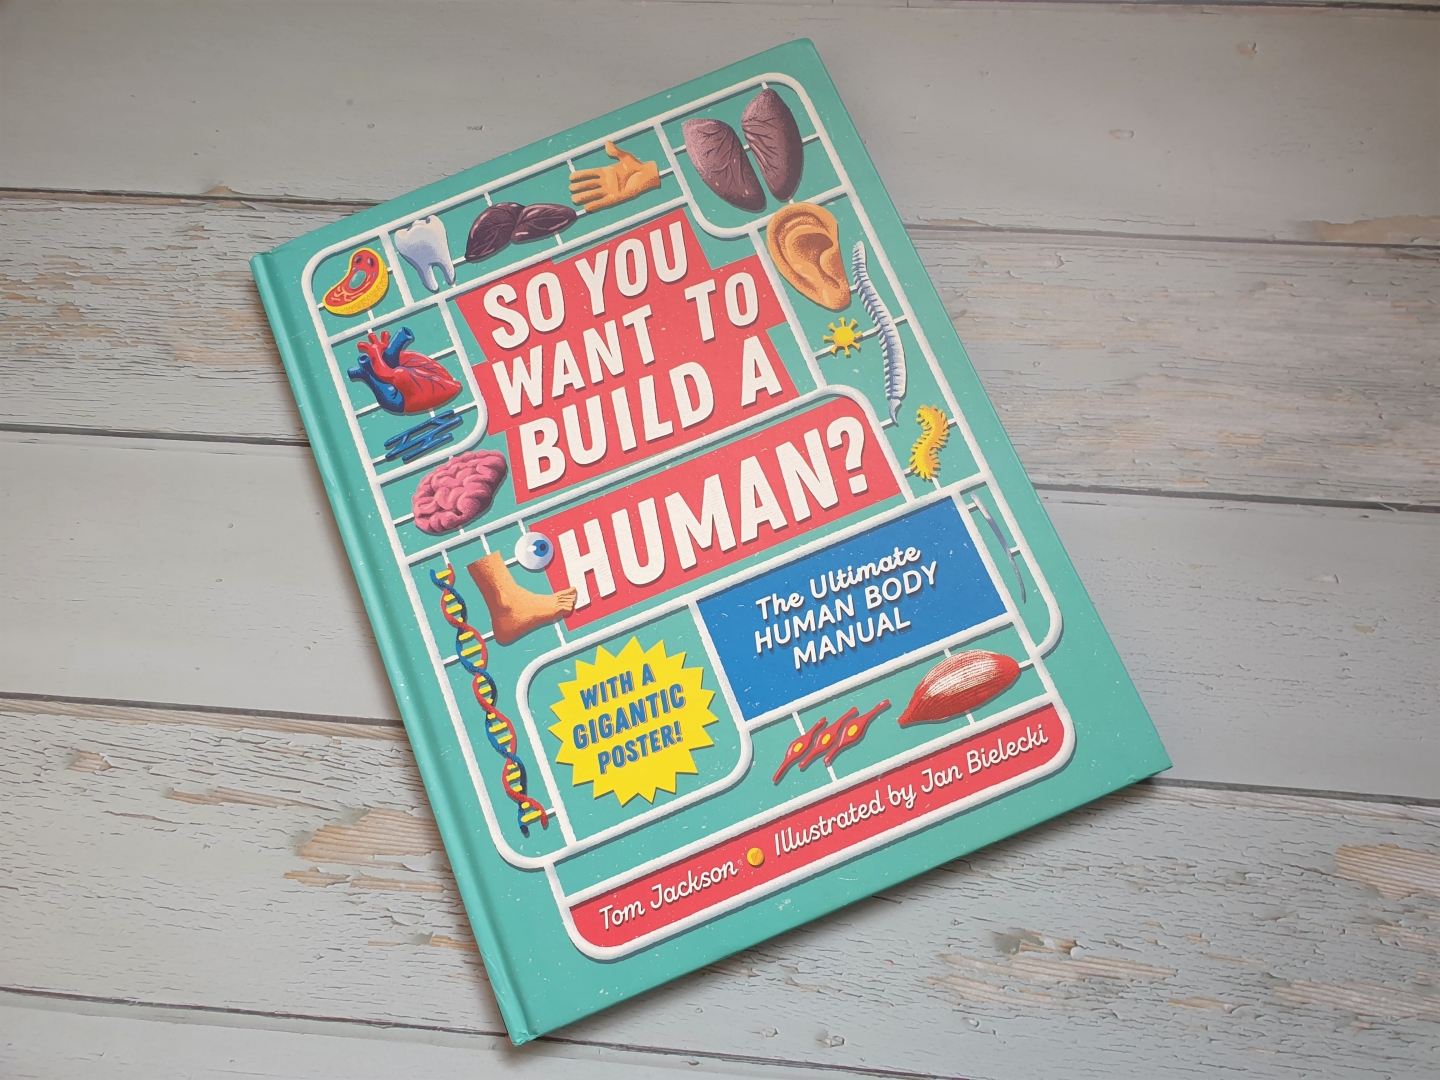 So you want to build a human? by Tom Jackson